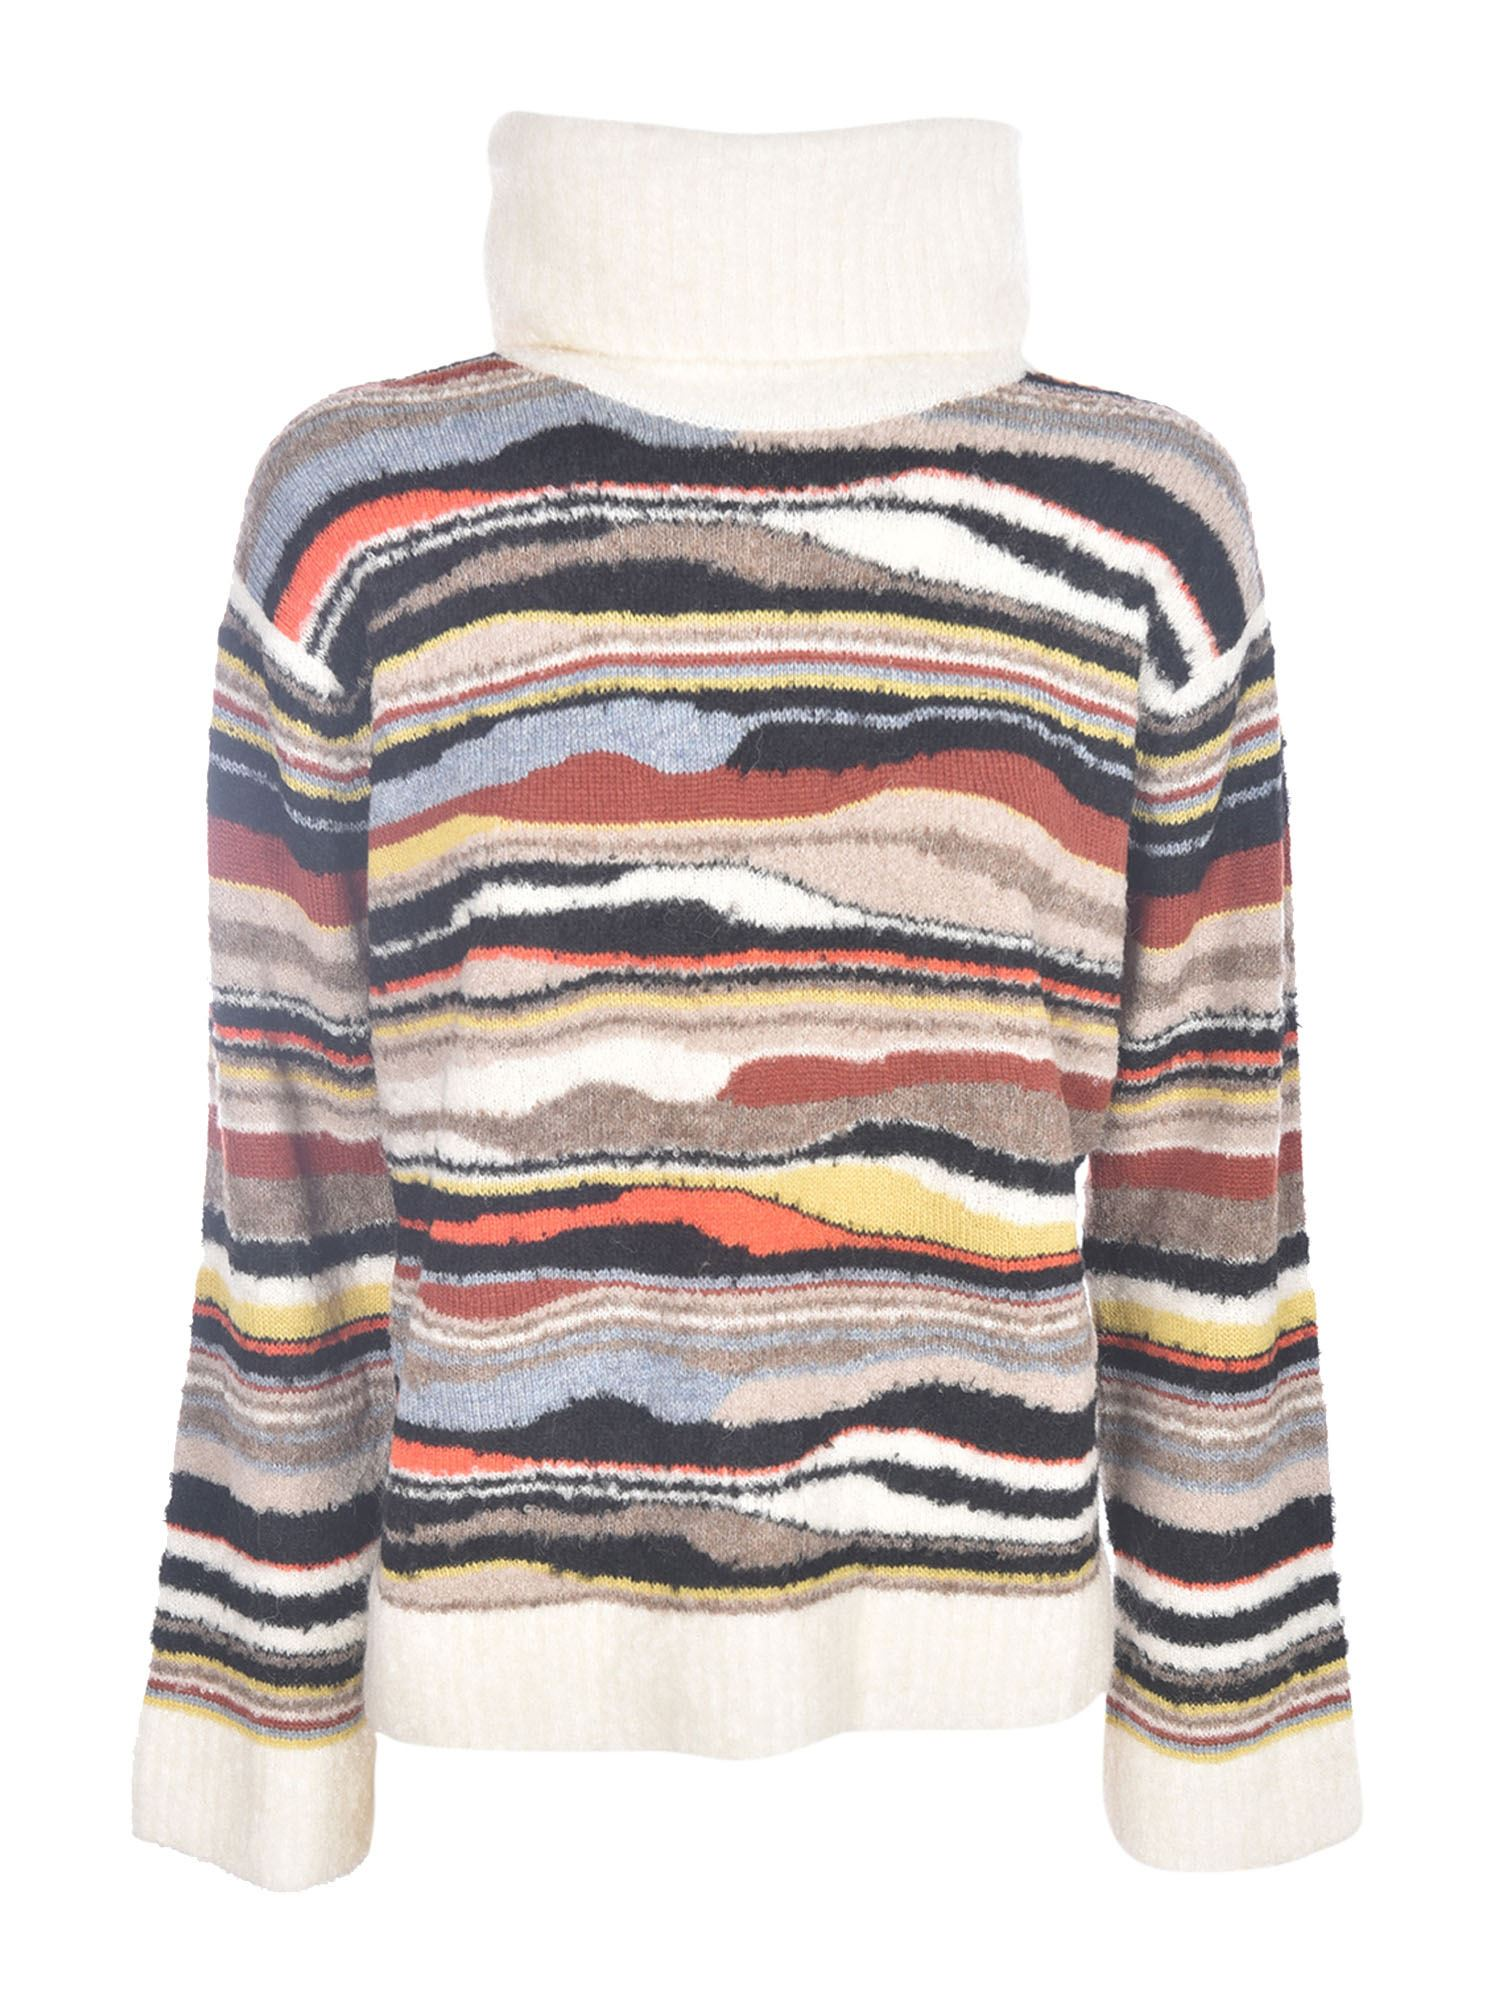 M Missoni MULTICOLOR DROPPED SHOULDER PULLOVER